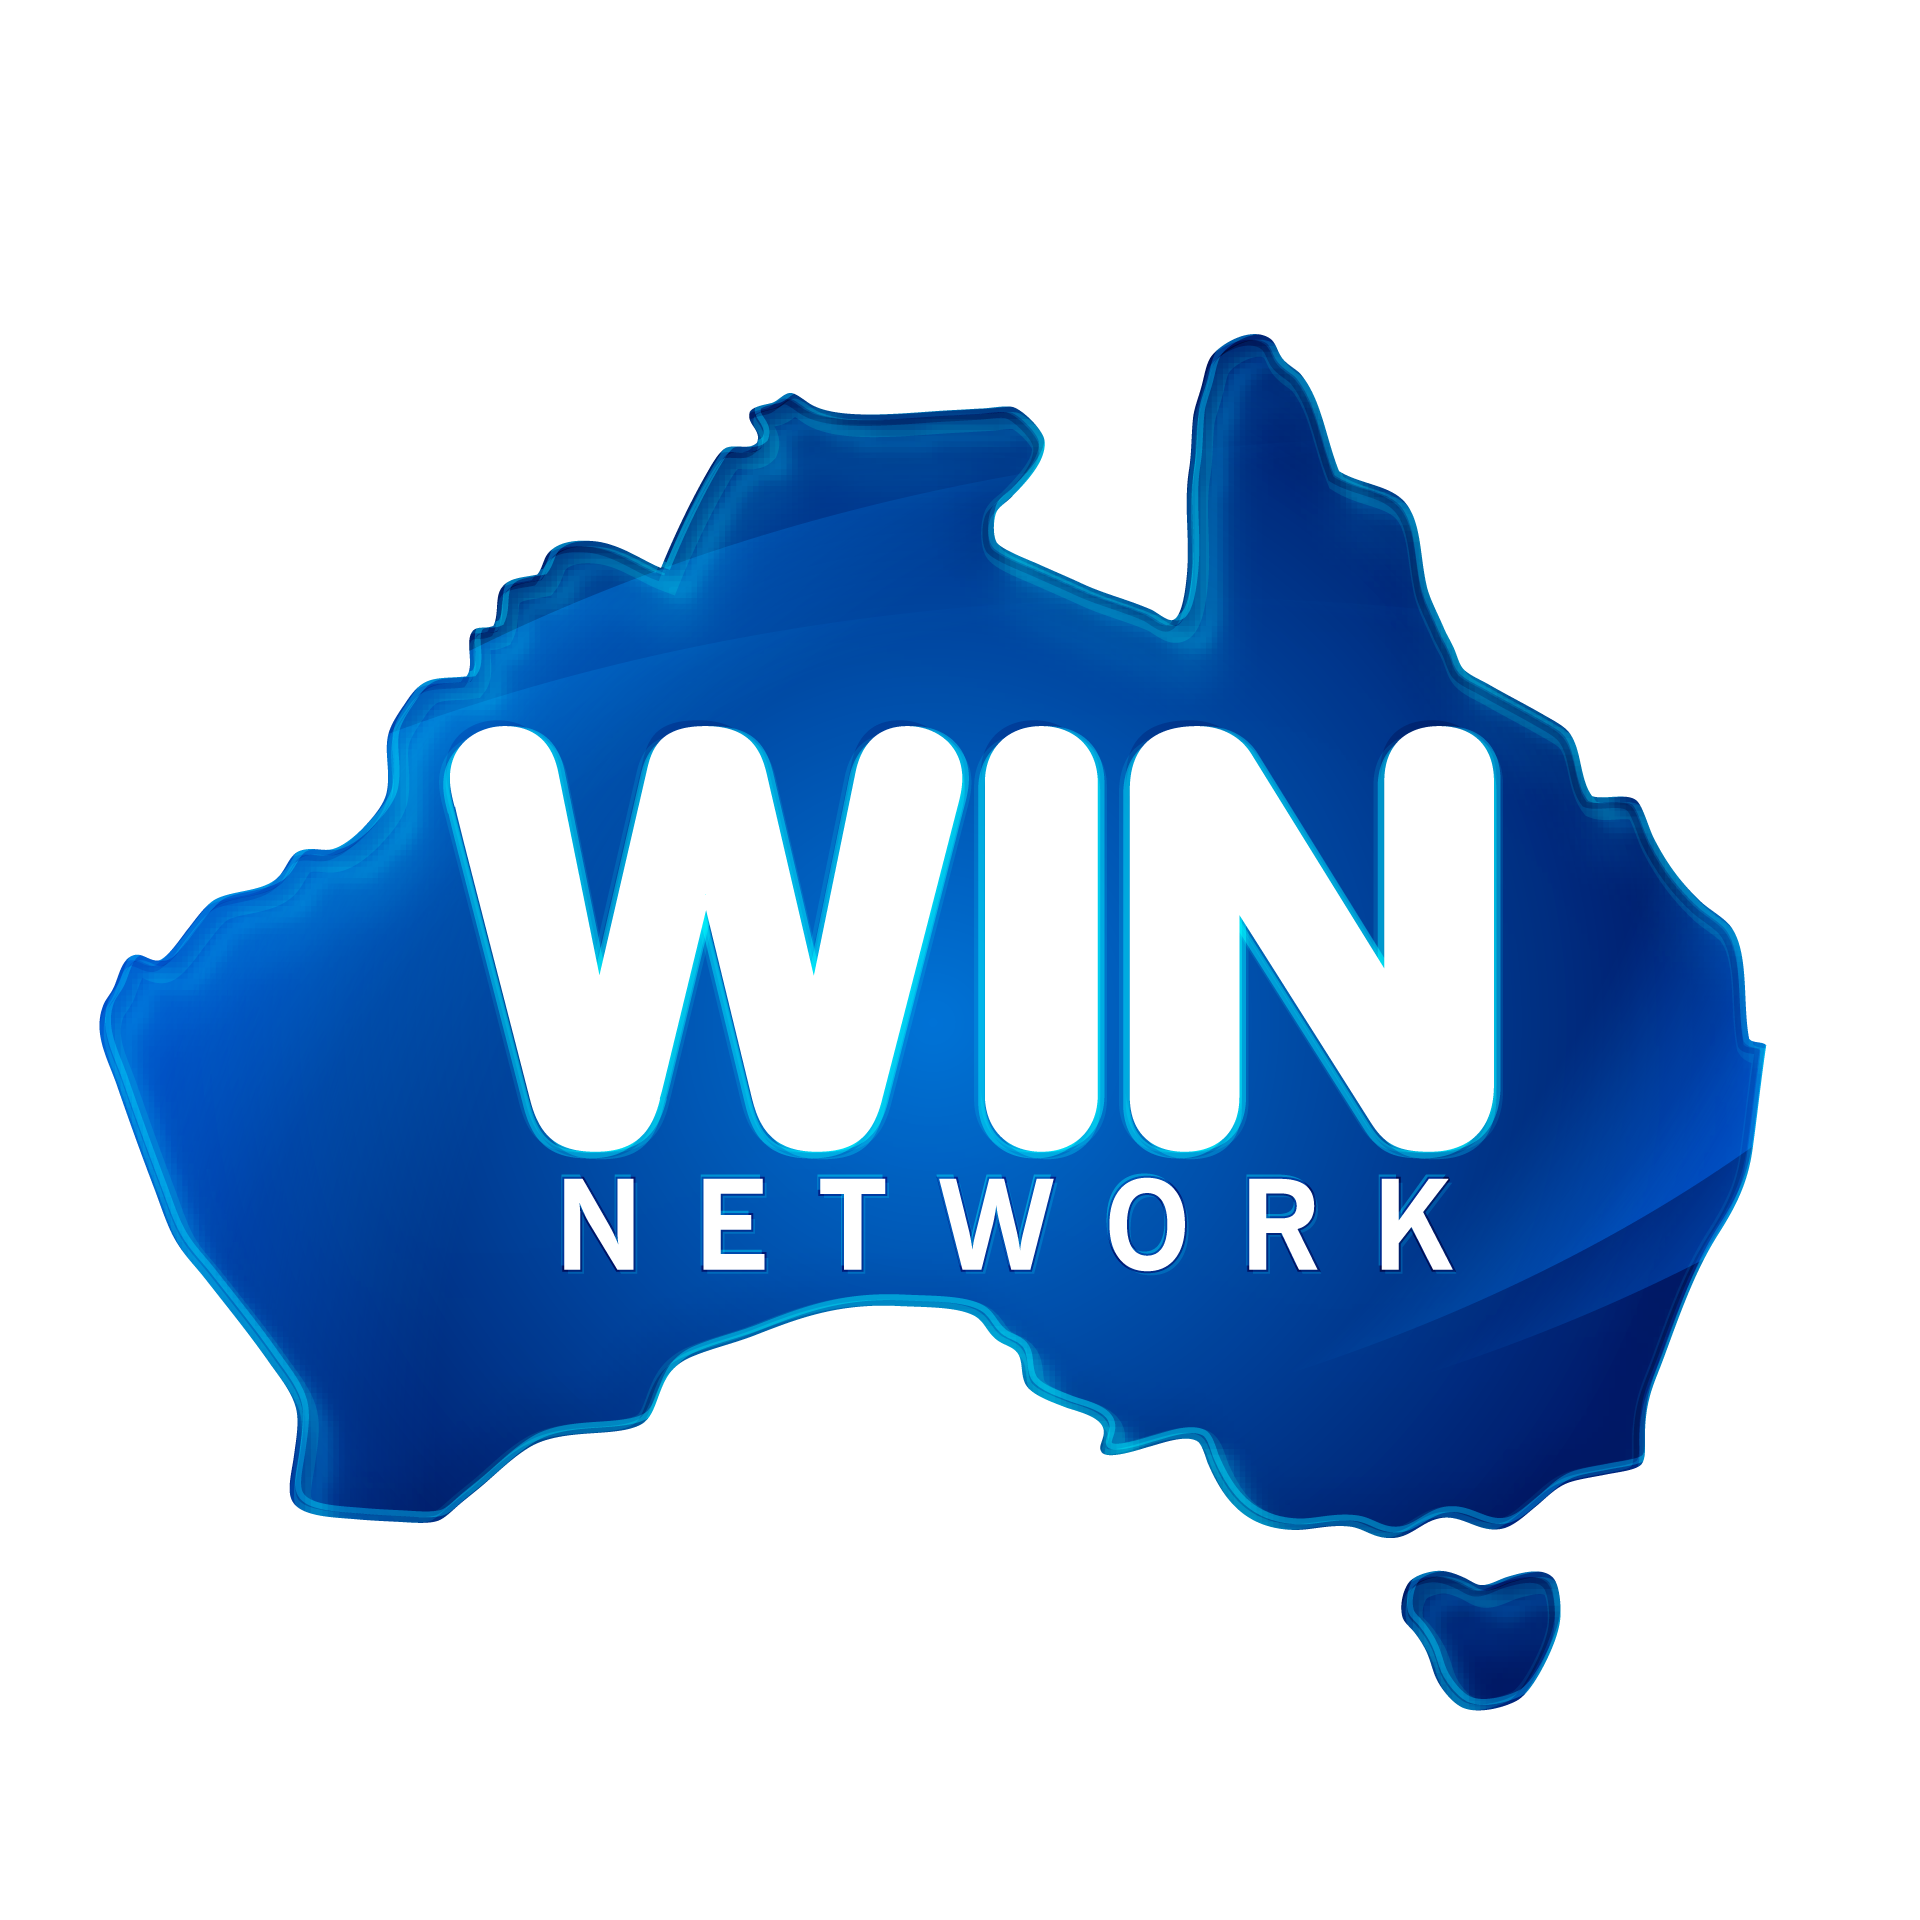 winnetworklogo_styled.png